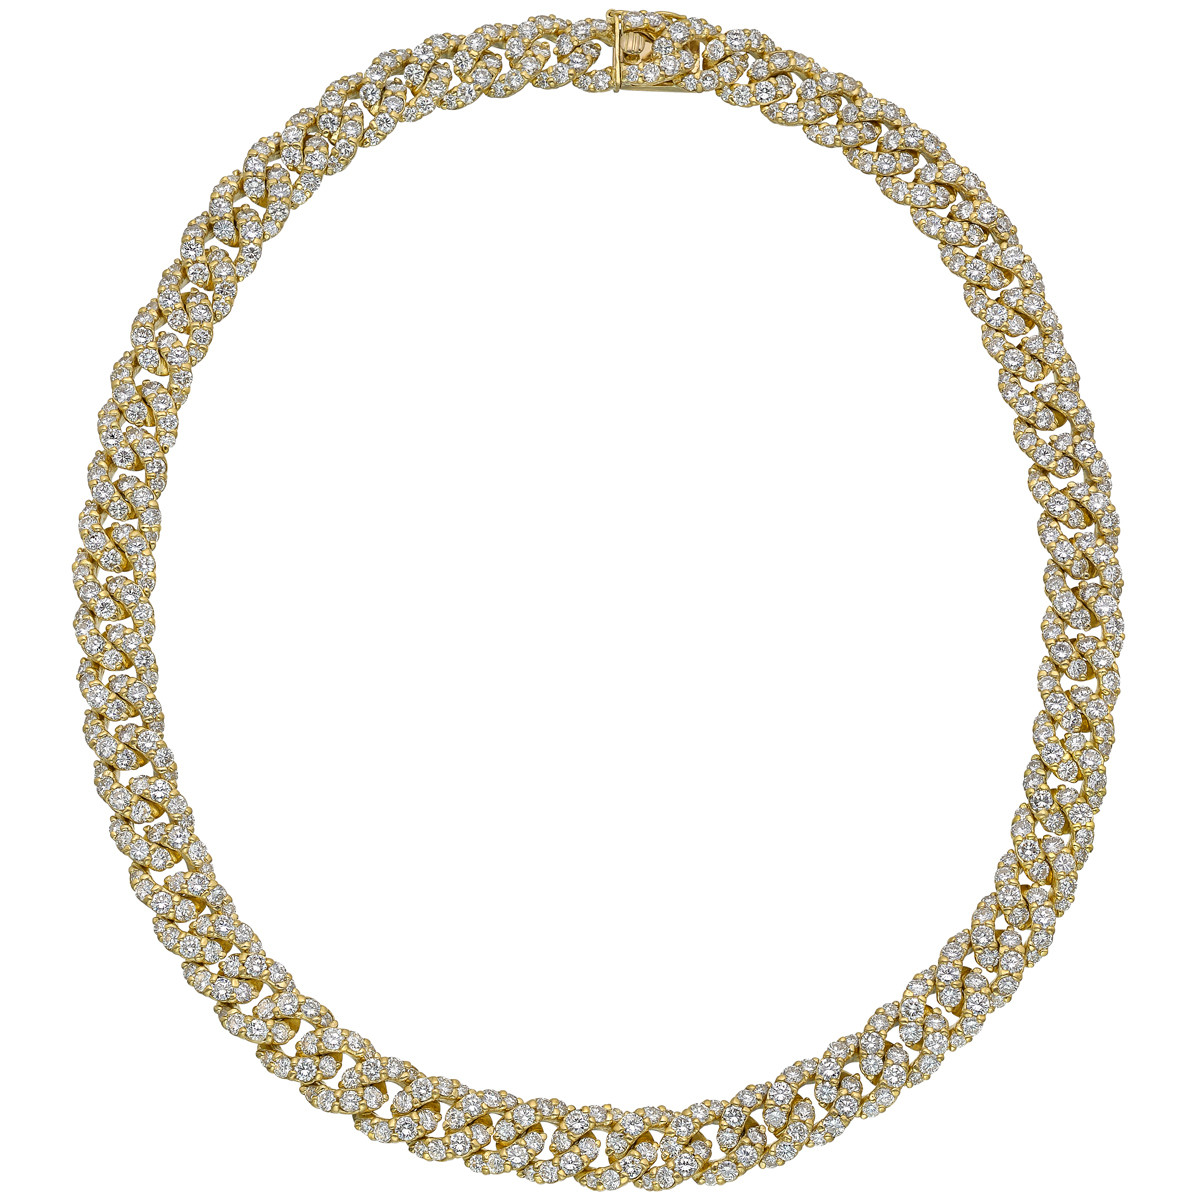 French 18k Yellow Gold & Diamond Curb-Link Necklace